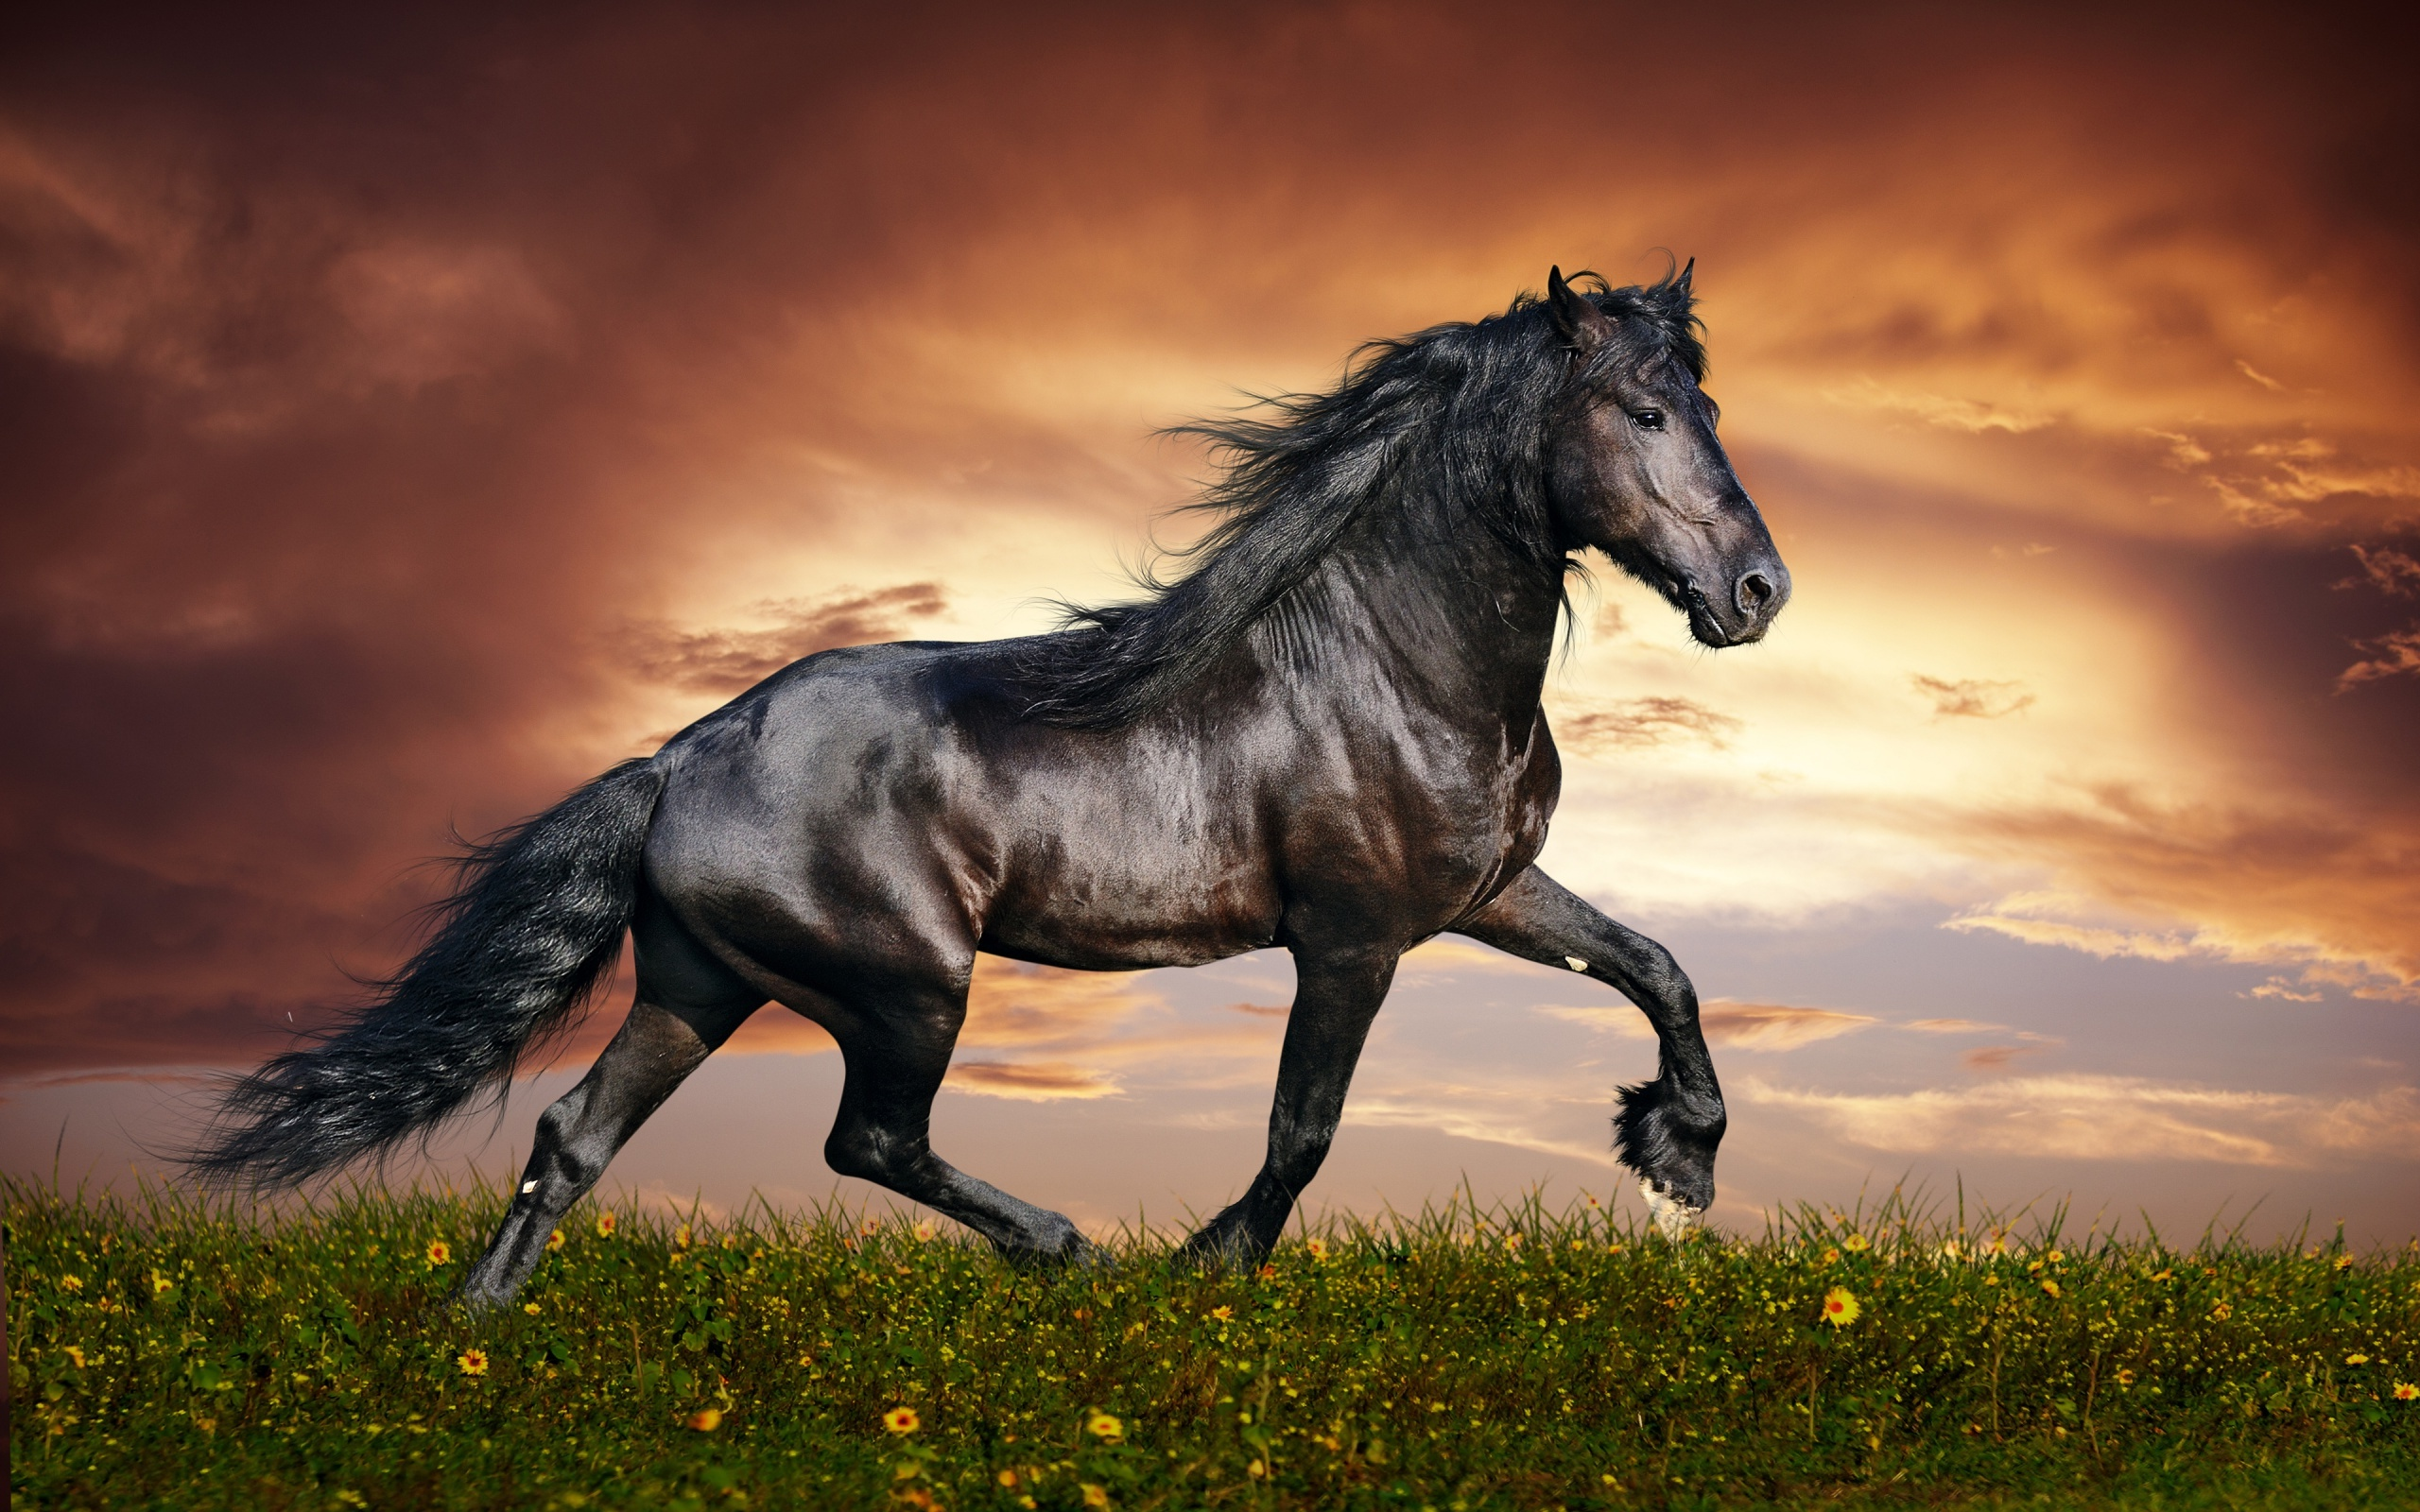 Dark Arabian Horse HD Wallpaper 1818